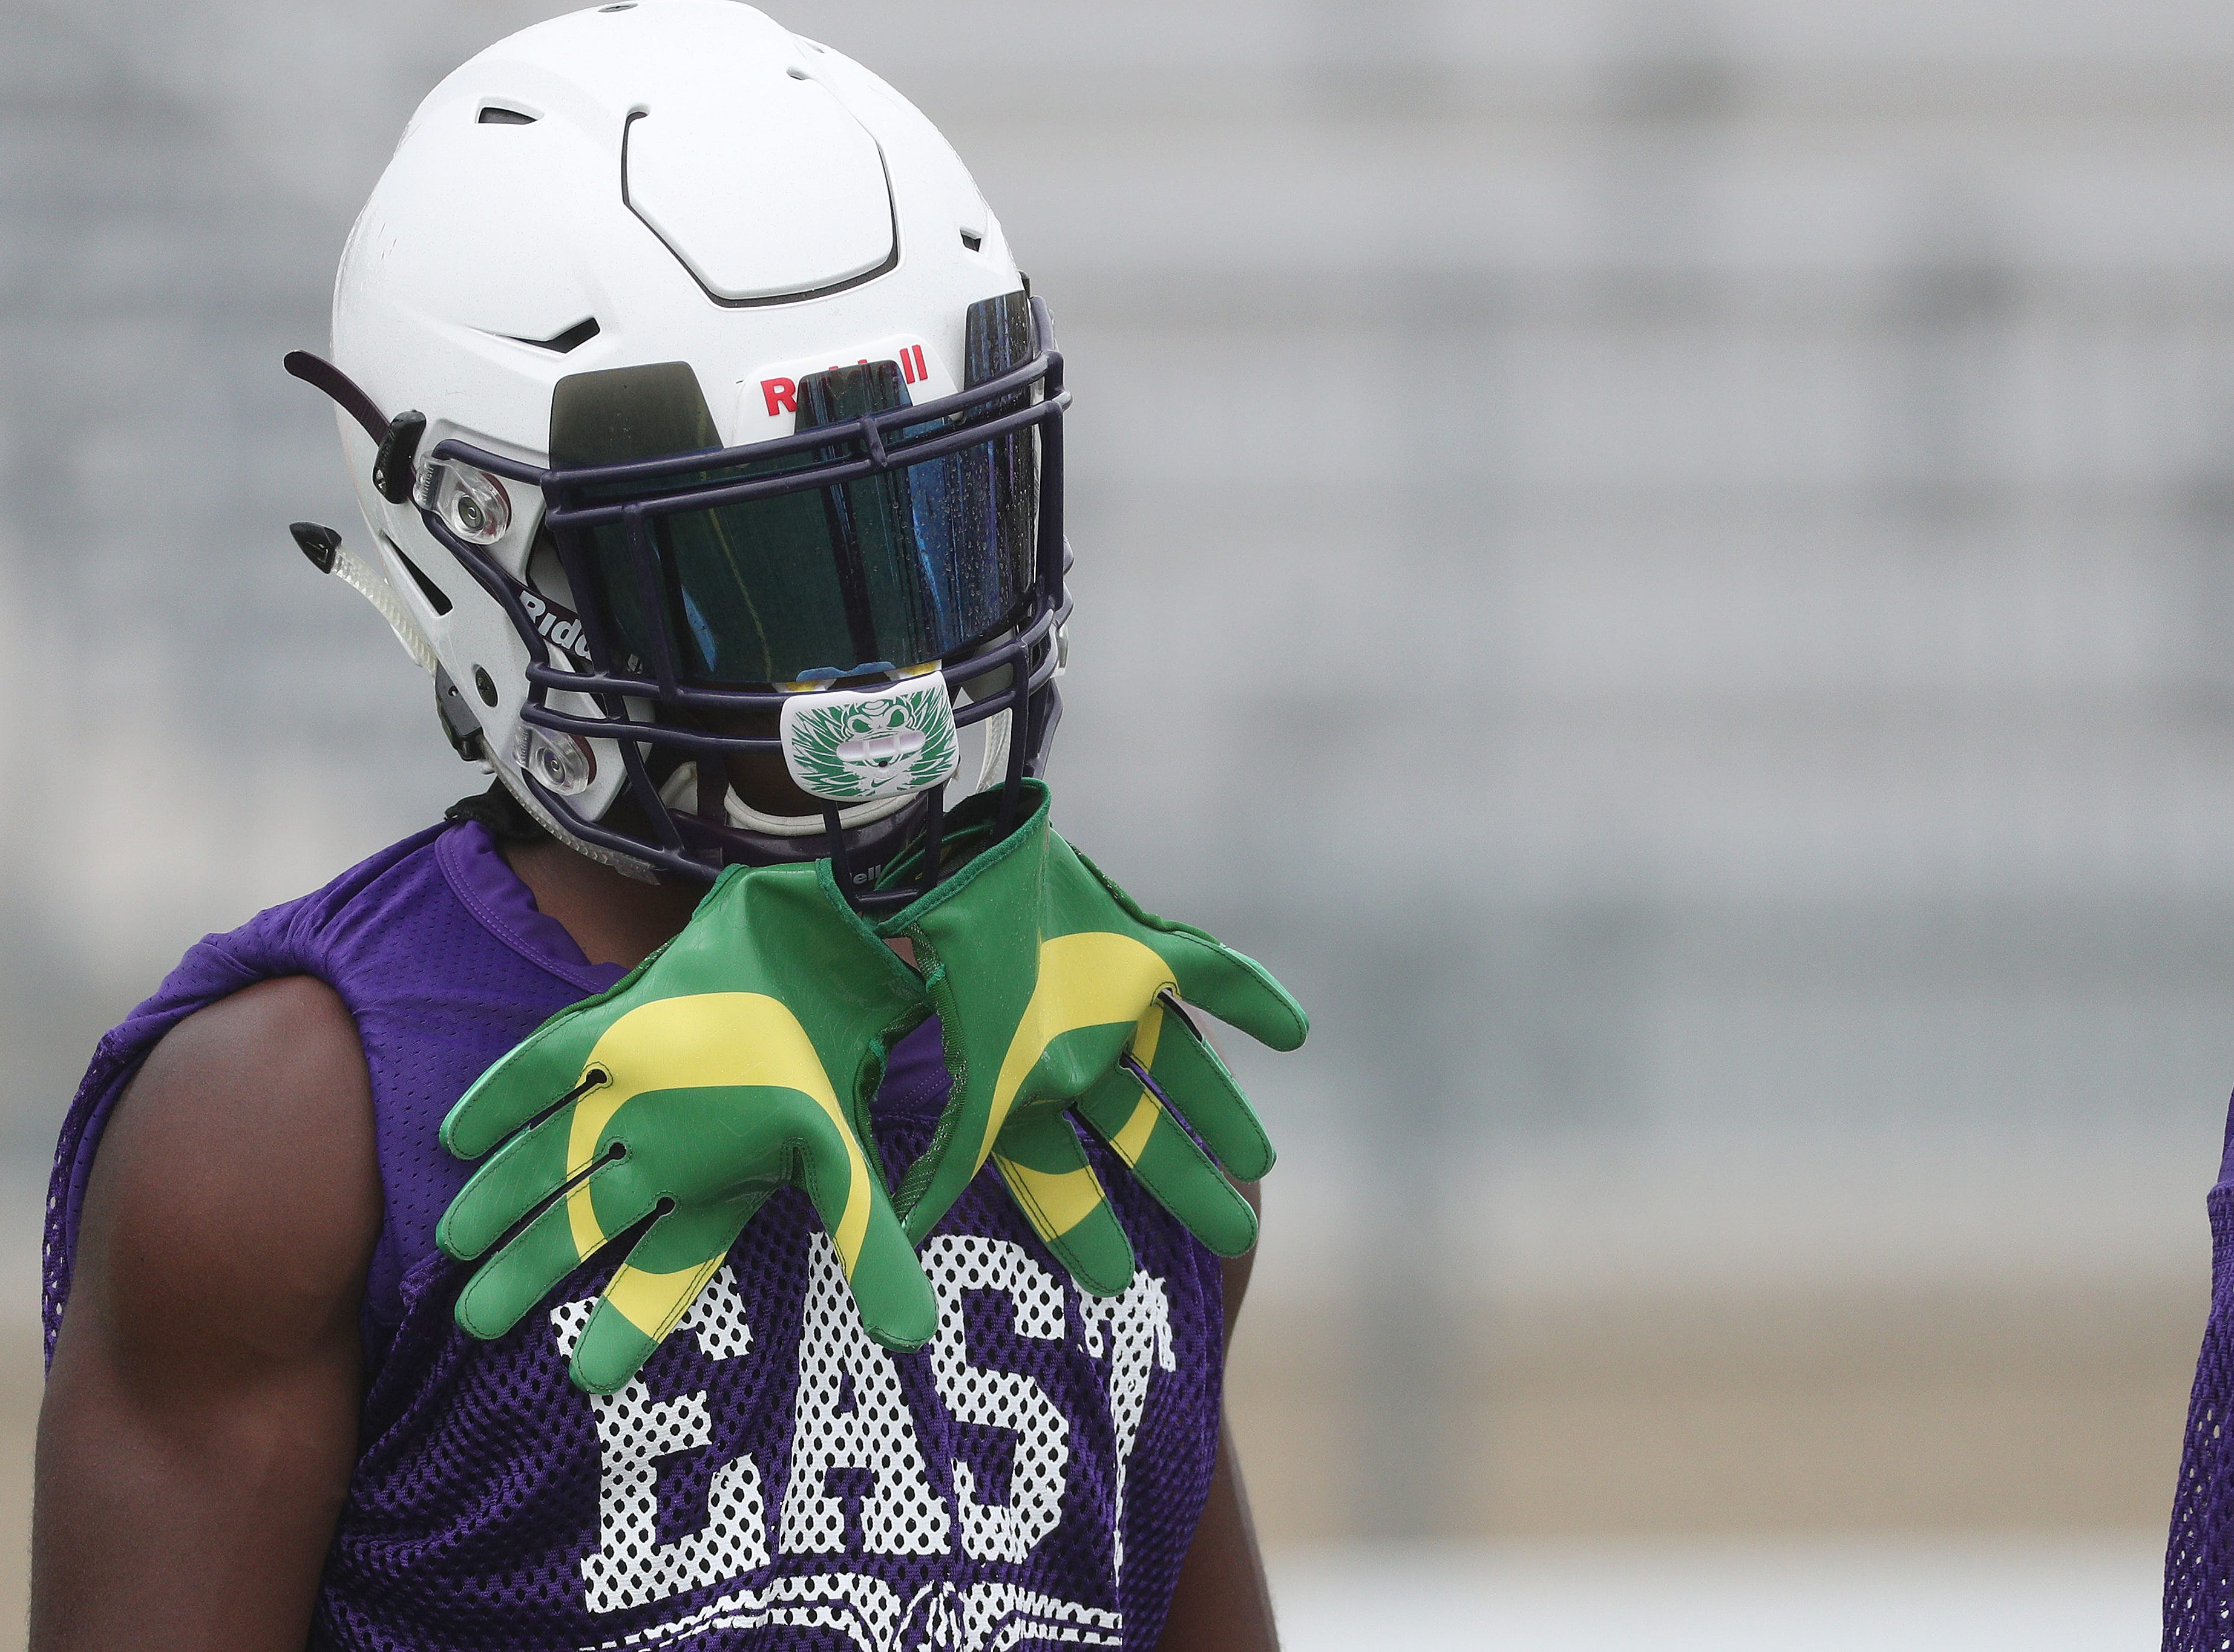 East's Seven McGee in the huddle during practice on Friday, Aug. 17, 2018 in Rochester, N.Y. The highly touted sophomore has made a verbal commitment to play for the University of Oregon.